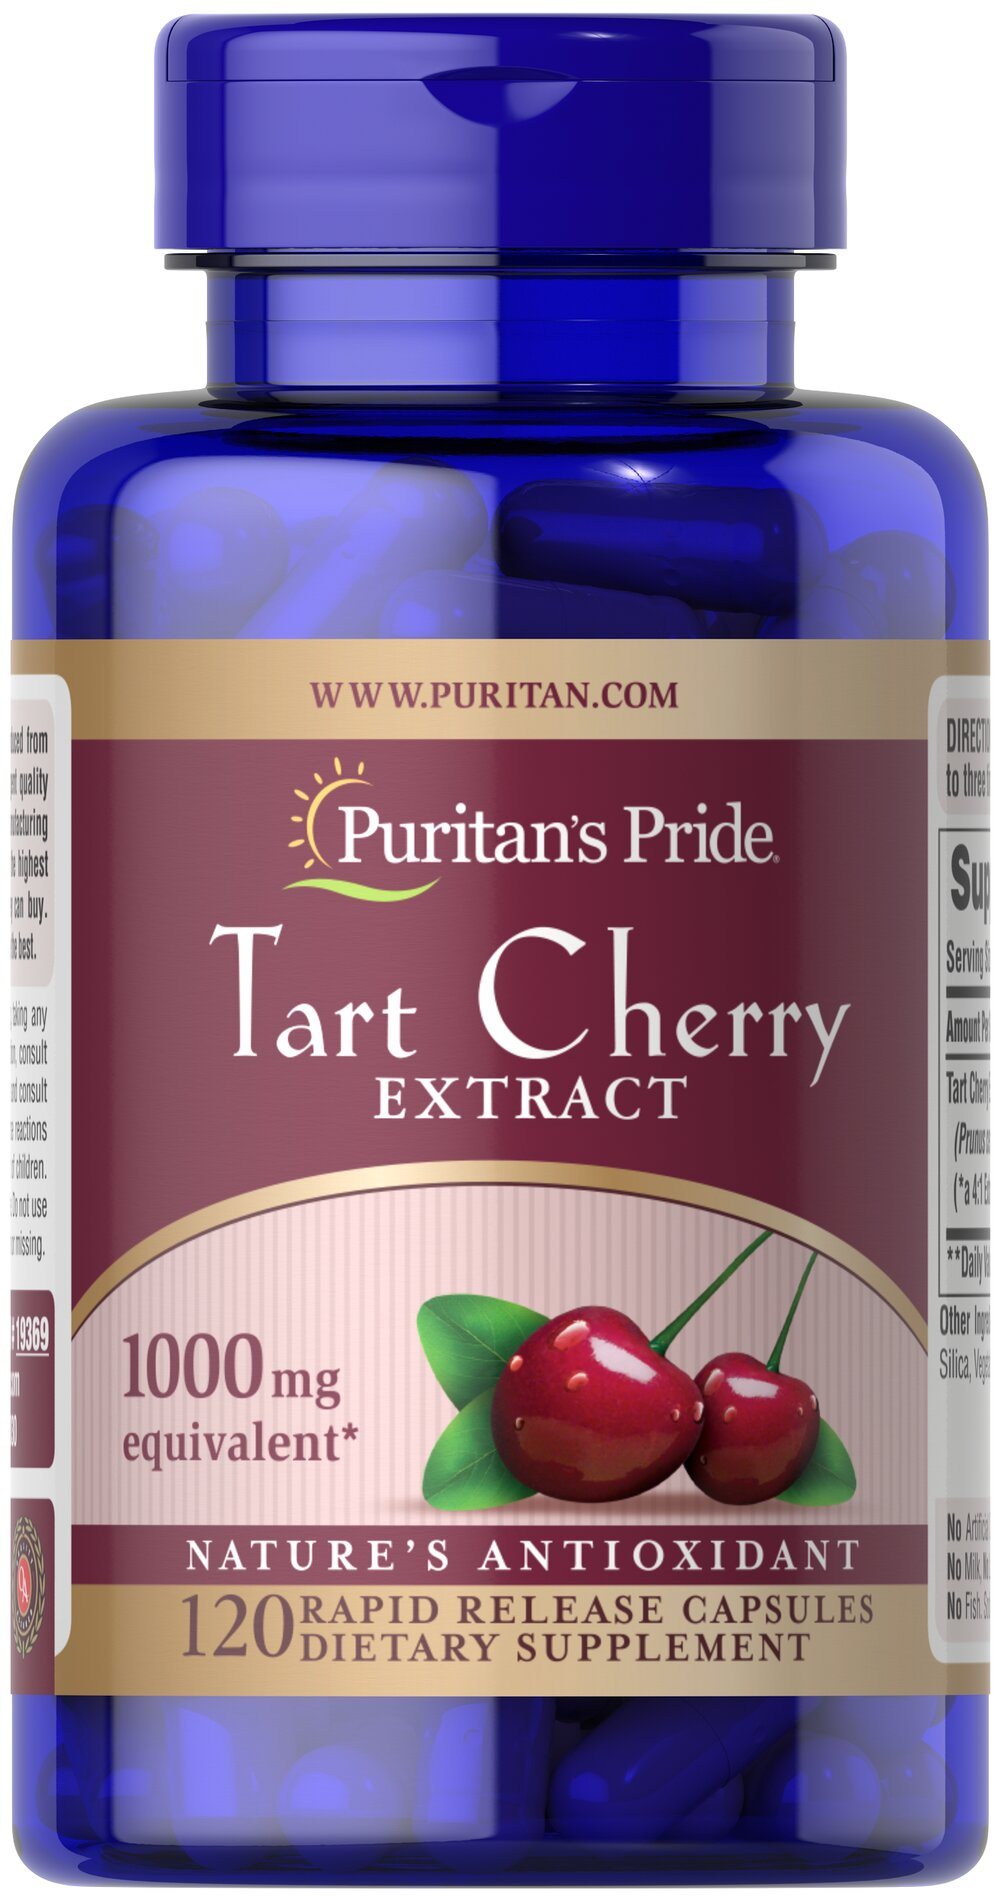 Tart Cherry Extract 1000 mg Thumbnail Alternate Bottle View